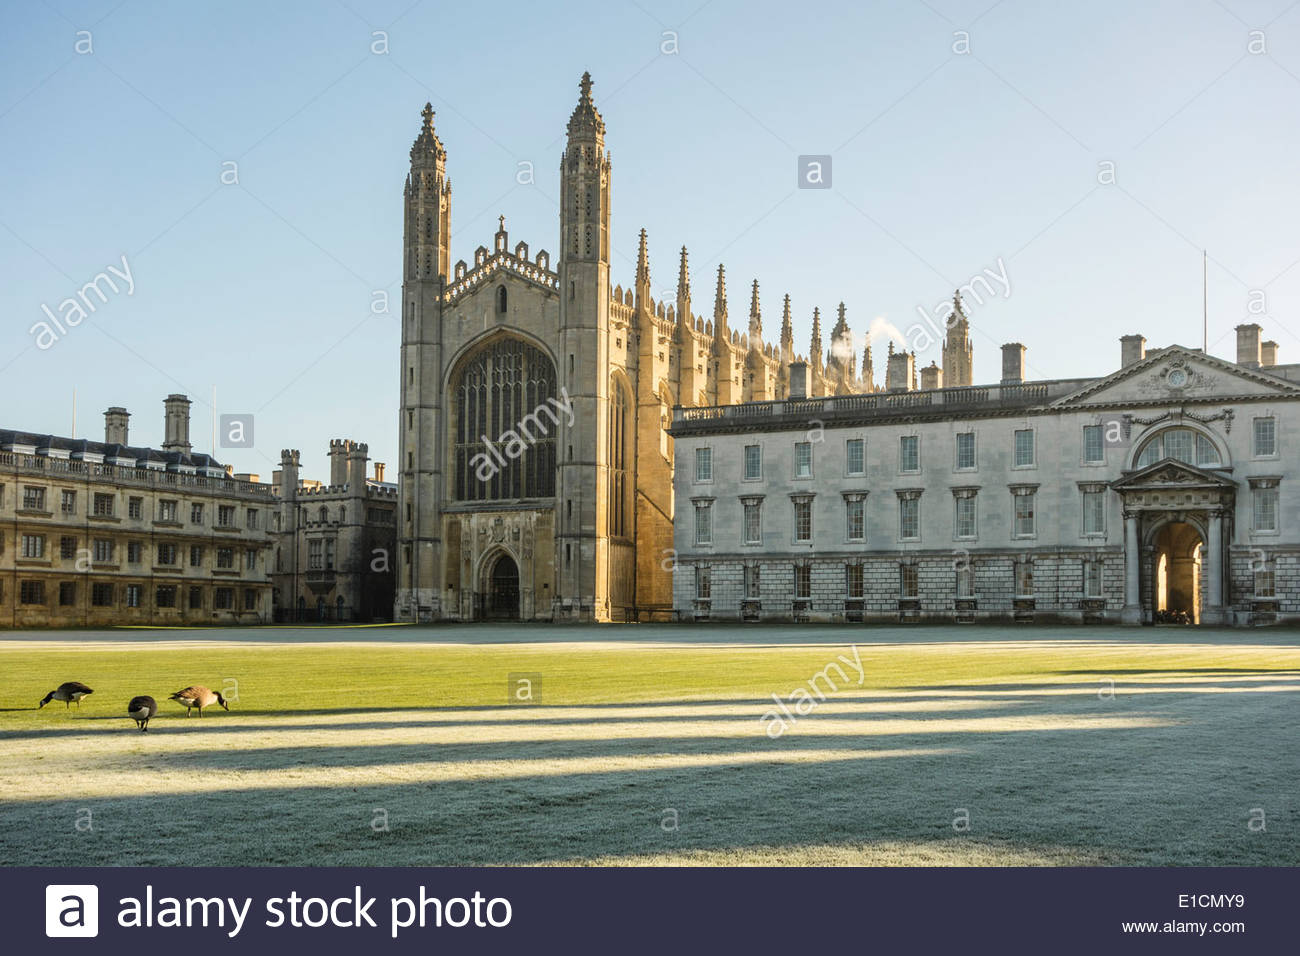 King's College, Cambridge on a frosty spring morning - Stock Image